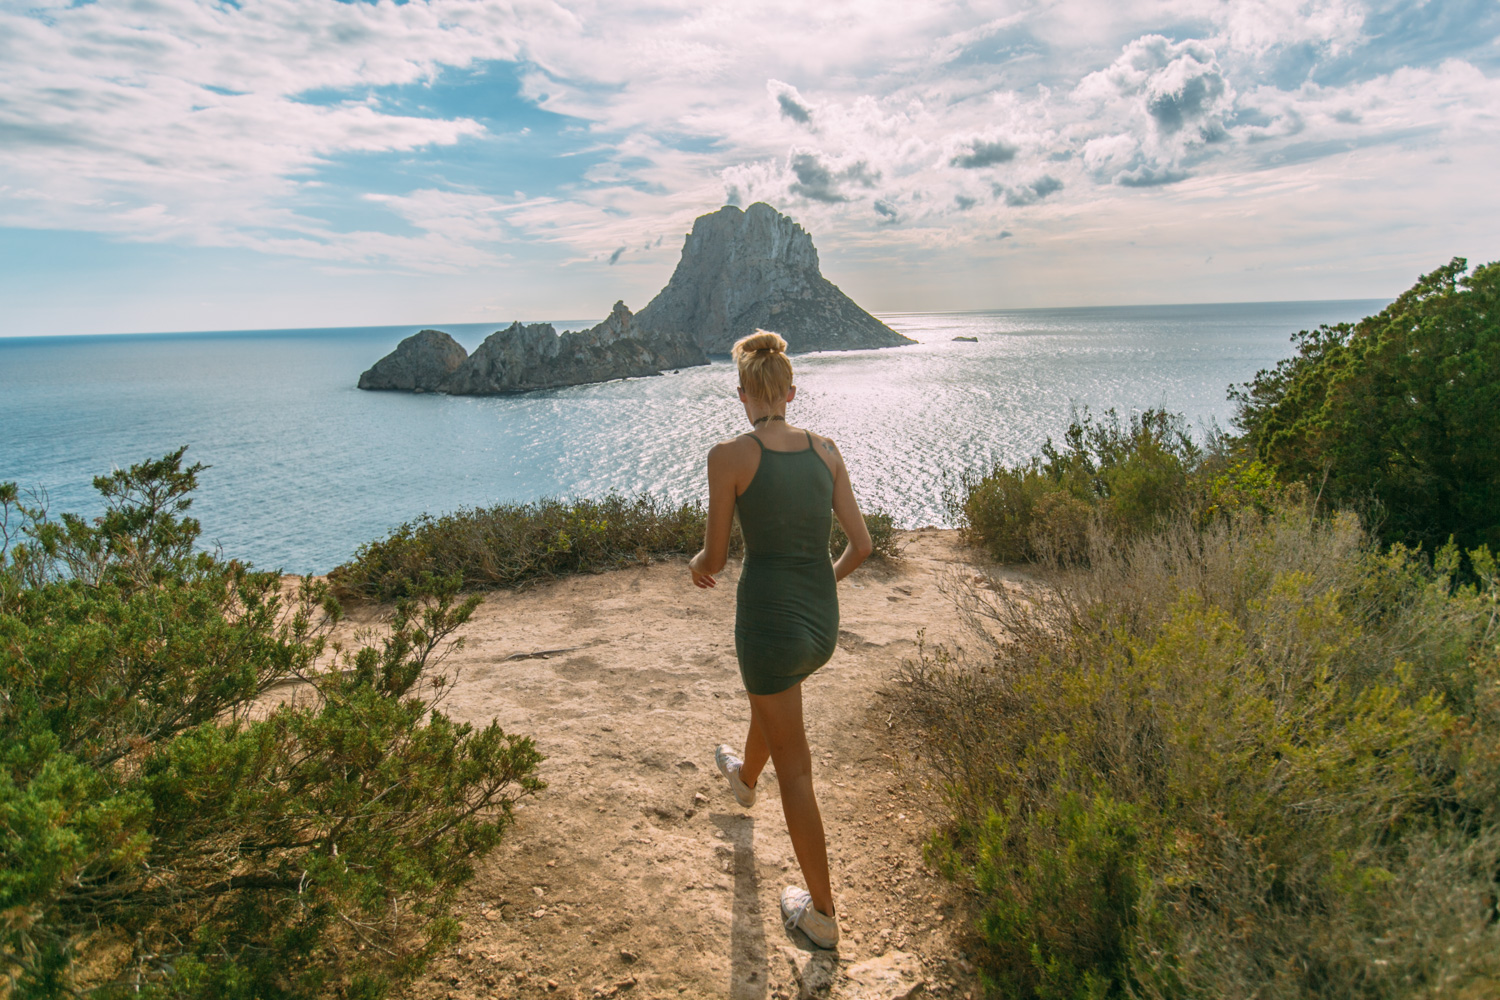 es vedra, ibiza, atlantis, sea nyphms, healing, legends, ufo, rochelle fox, wanderlife, travel tips, Europe, island, party, magnetic field, magnetic (14 of 24)